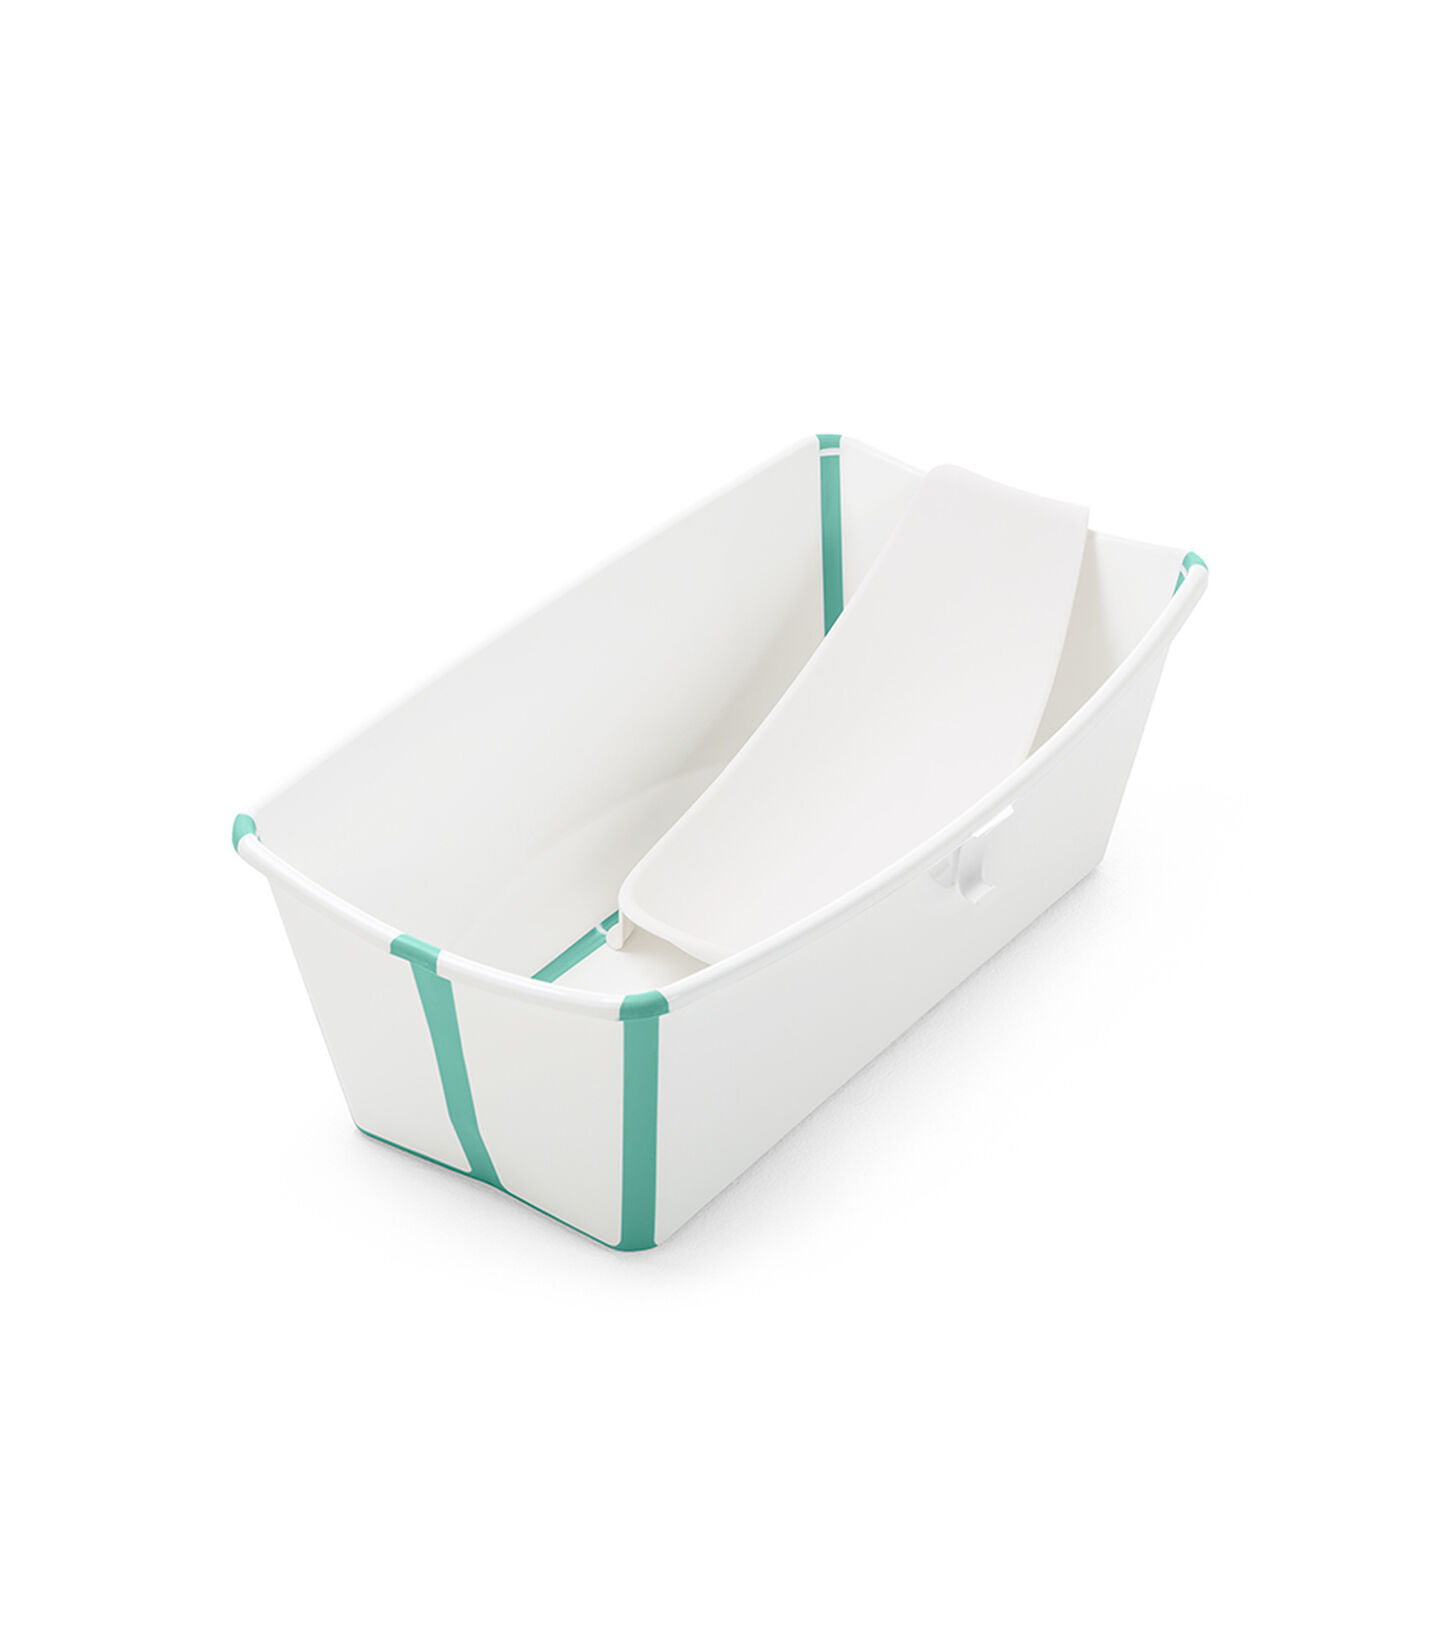 Stokke® Flexi Bath® bath tub, White Aqua with Newborn insert. view 2